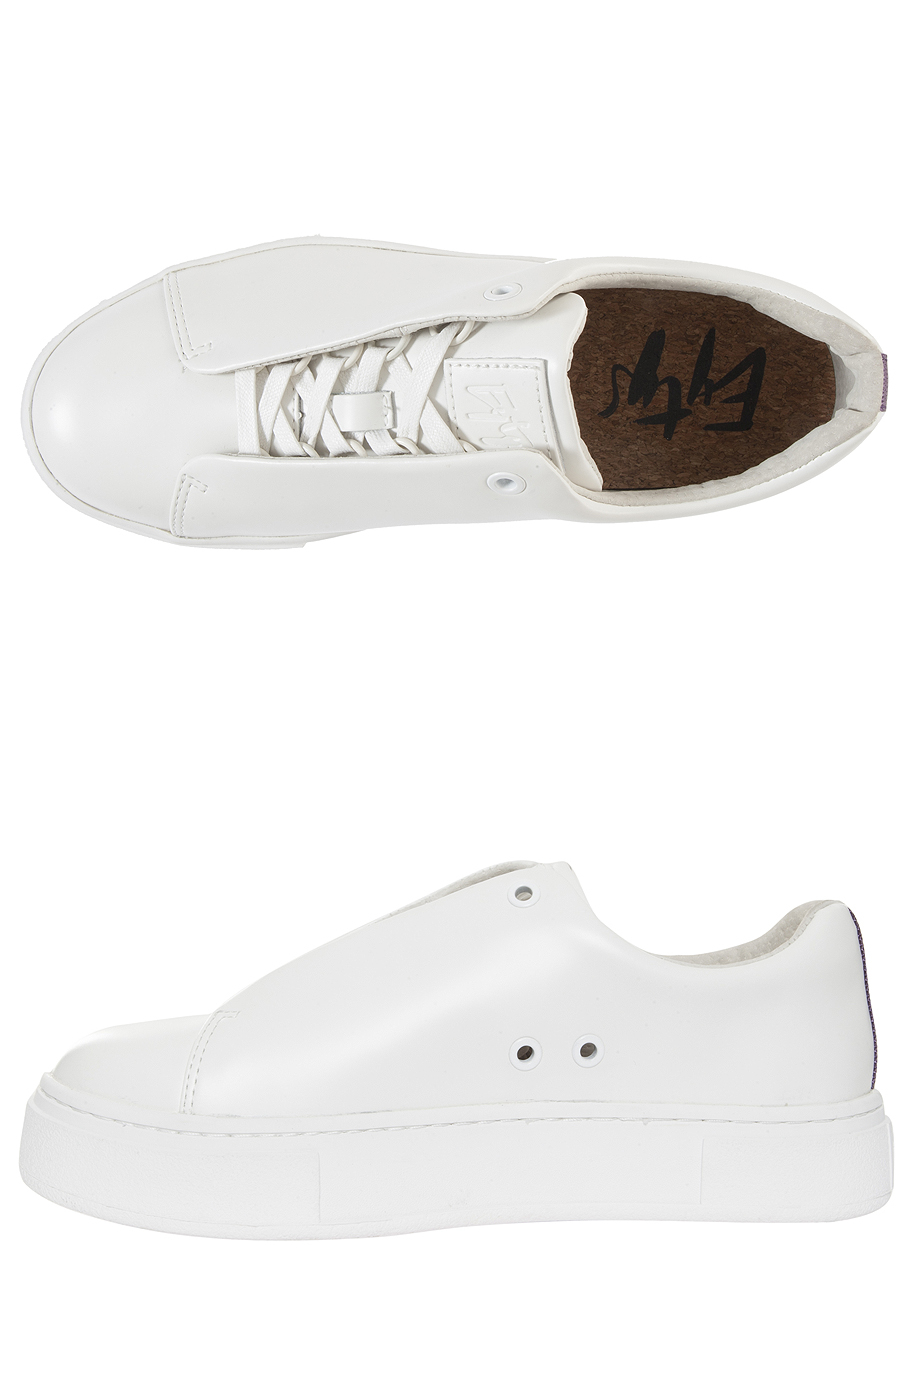 Eytys White Doja Leather Sneakers sale explore get to buy cheap online free shipping explore low shipping online outlet store locations bZ3TPFuE